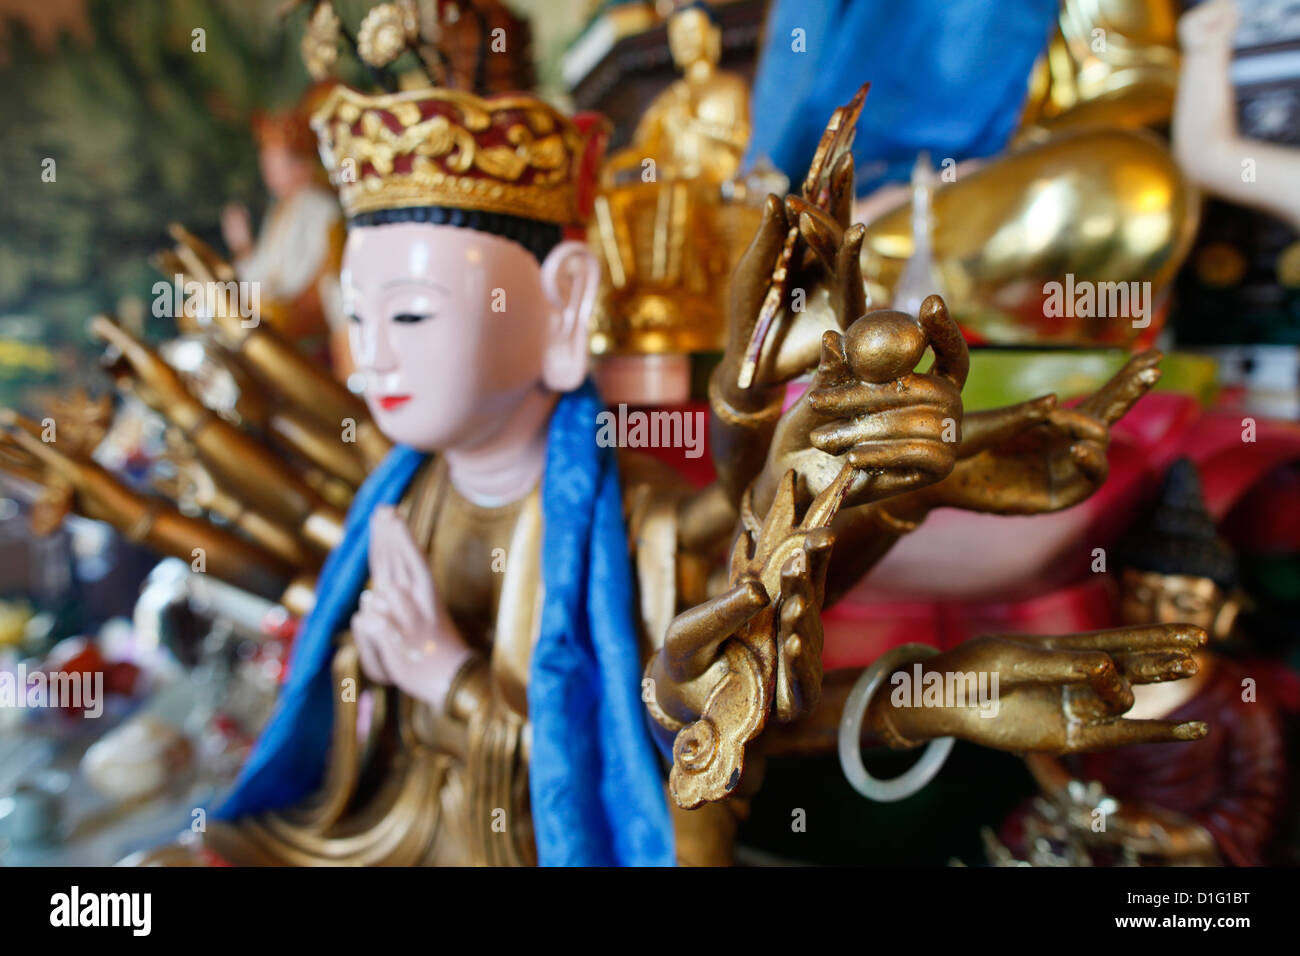 Buddha statue, Tu An Buddhist temple, Saint-Pierre-en-Faucigny, Haute Savoie, France, Europe Stock Photo